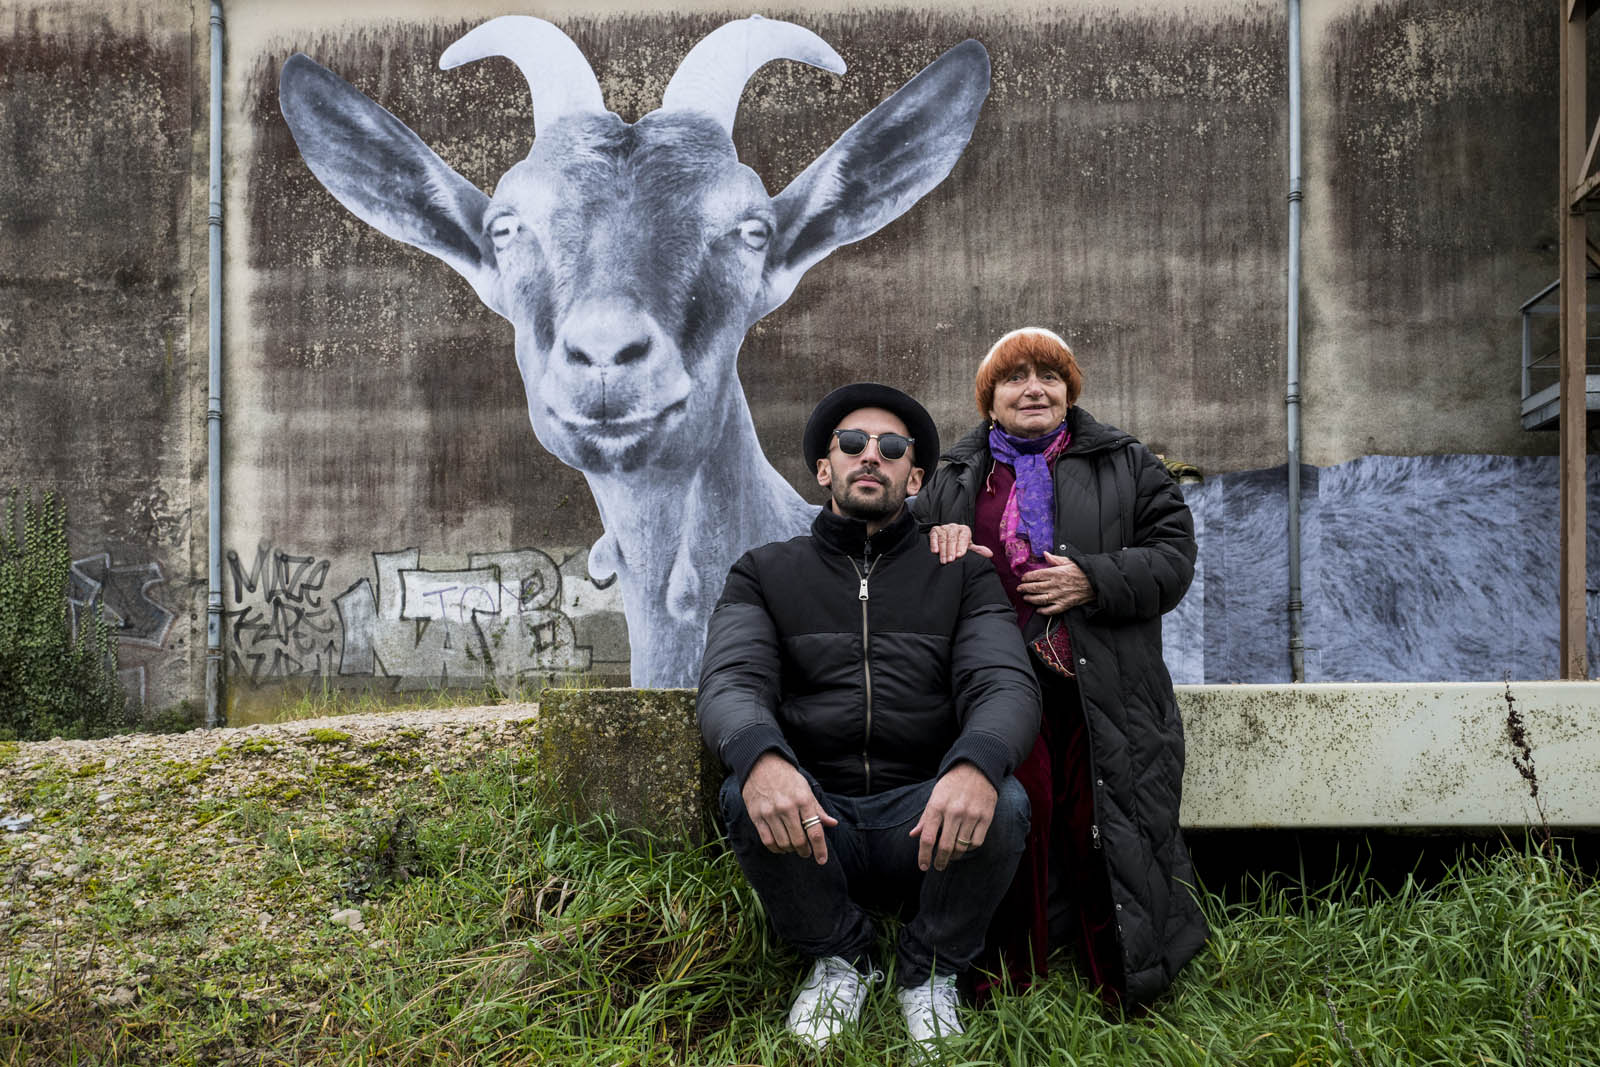 62 years after directing her first feature, Agnès Varda says her latest award-winning documentary  Visages, Villages , co-directed with street artist JR,may be her last film.